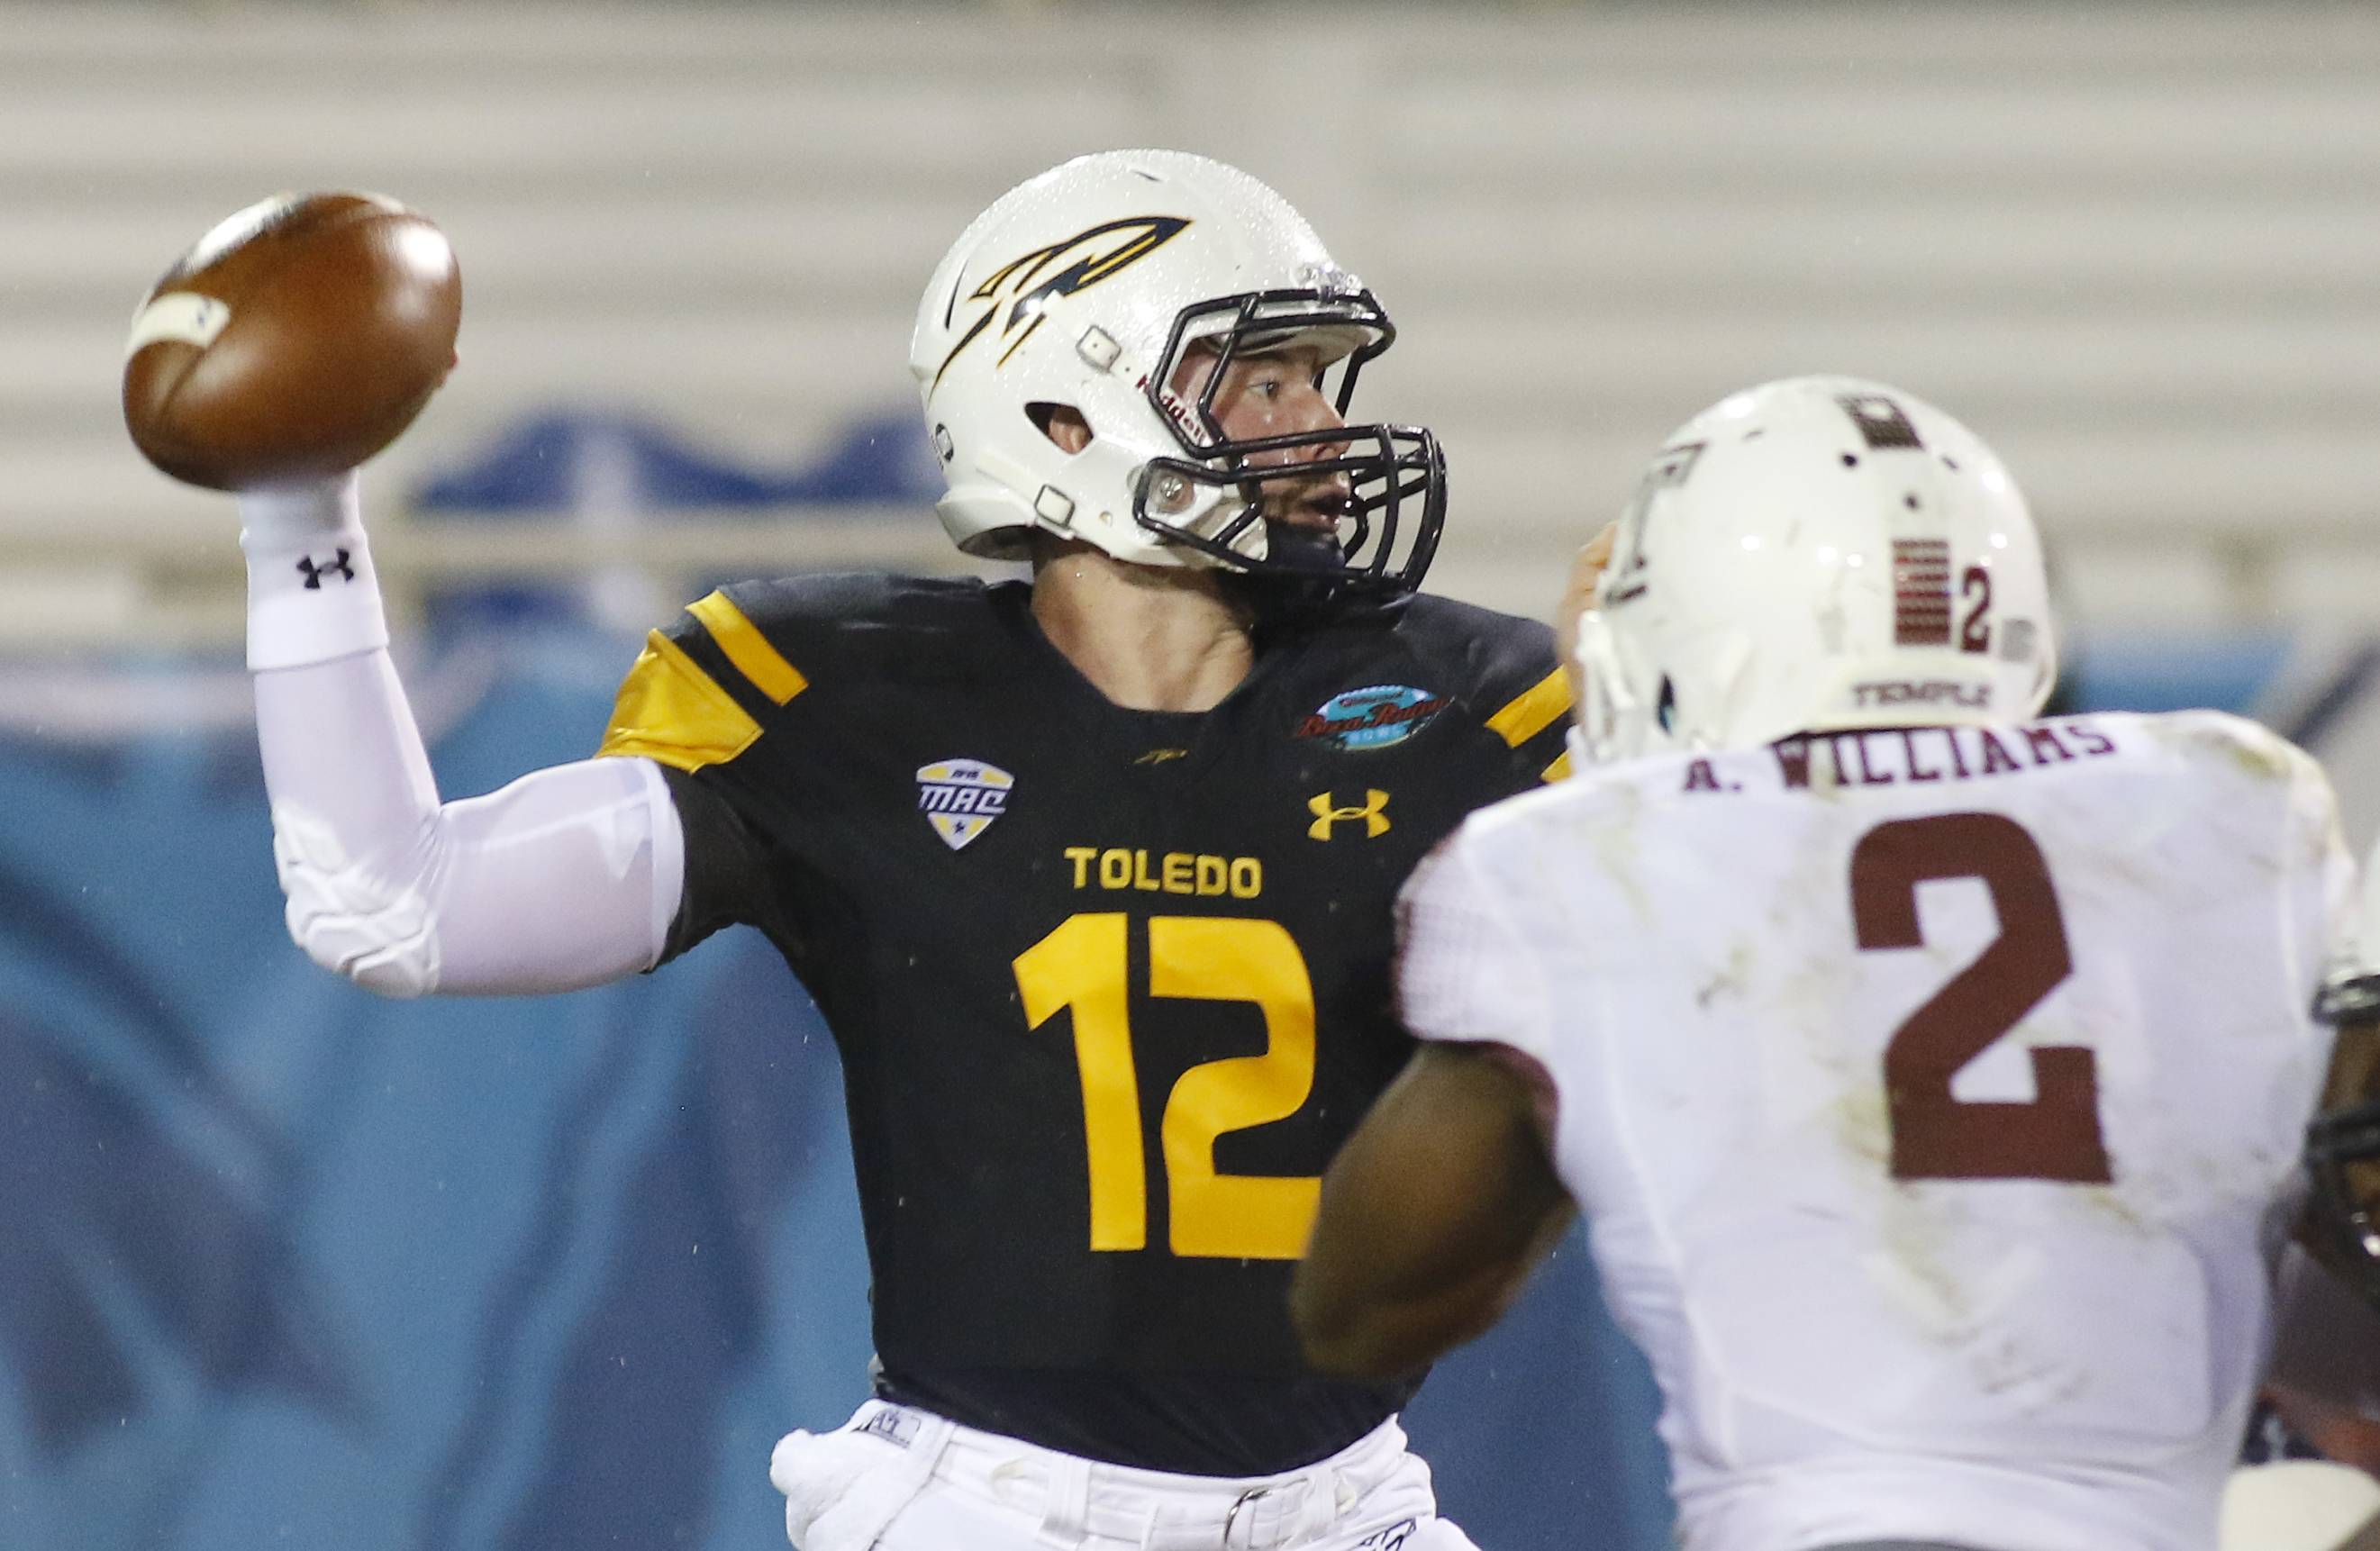 Toledo quarterback Phillip Ely (12) throws under pressure from Temple linebacker Avery Williams (2) in the first quarter of the Boca Raton Bowl NCAA college football game Tuesday, Dec. 22, 2015, in Boca Raton, Fla. (AP Photo/Joe Skipper)